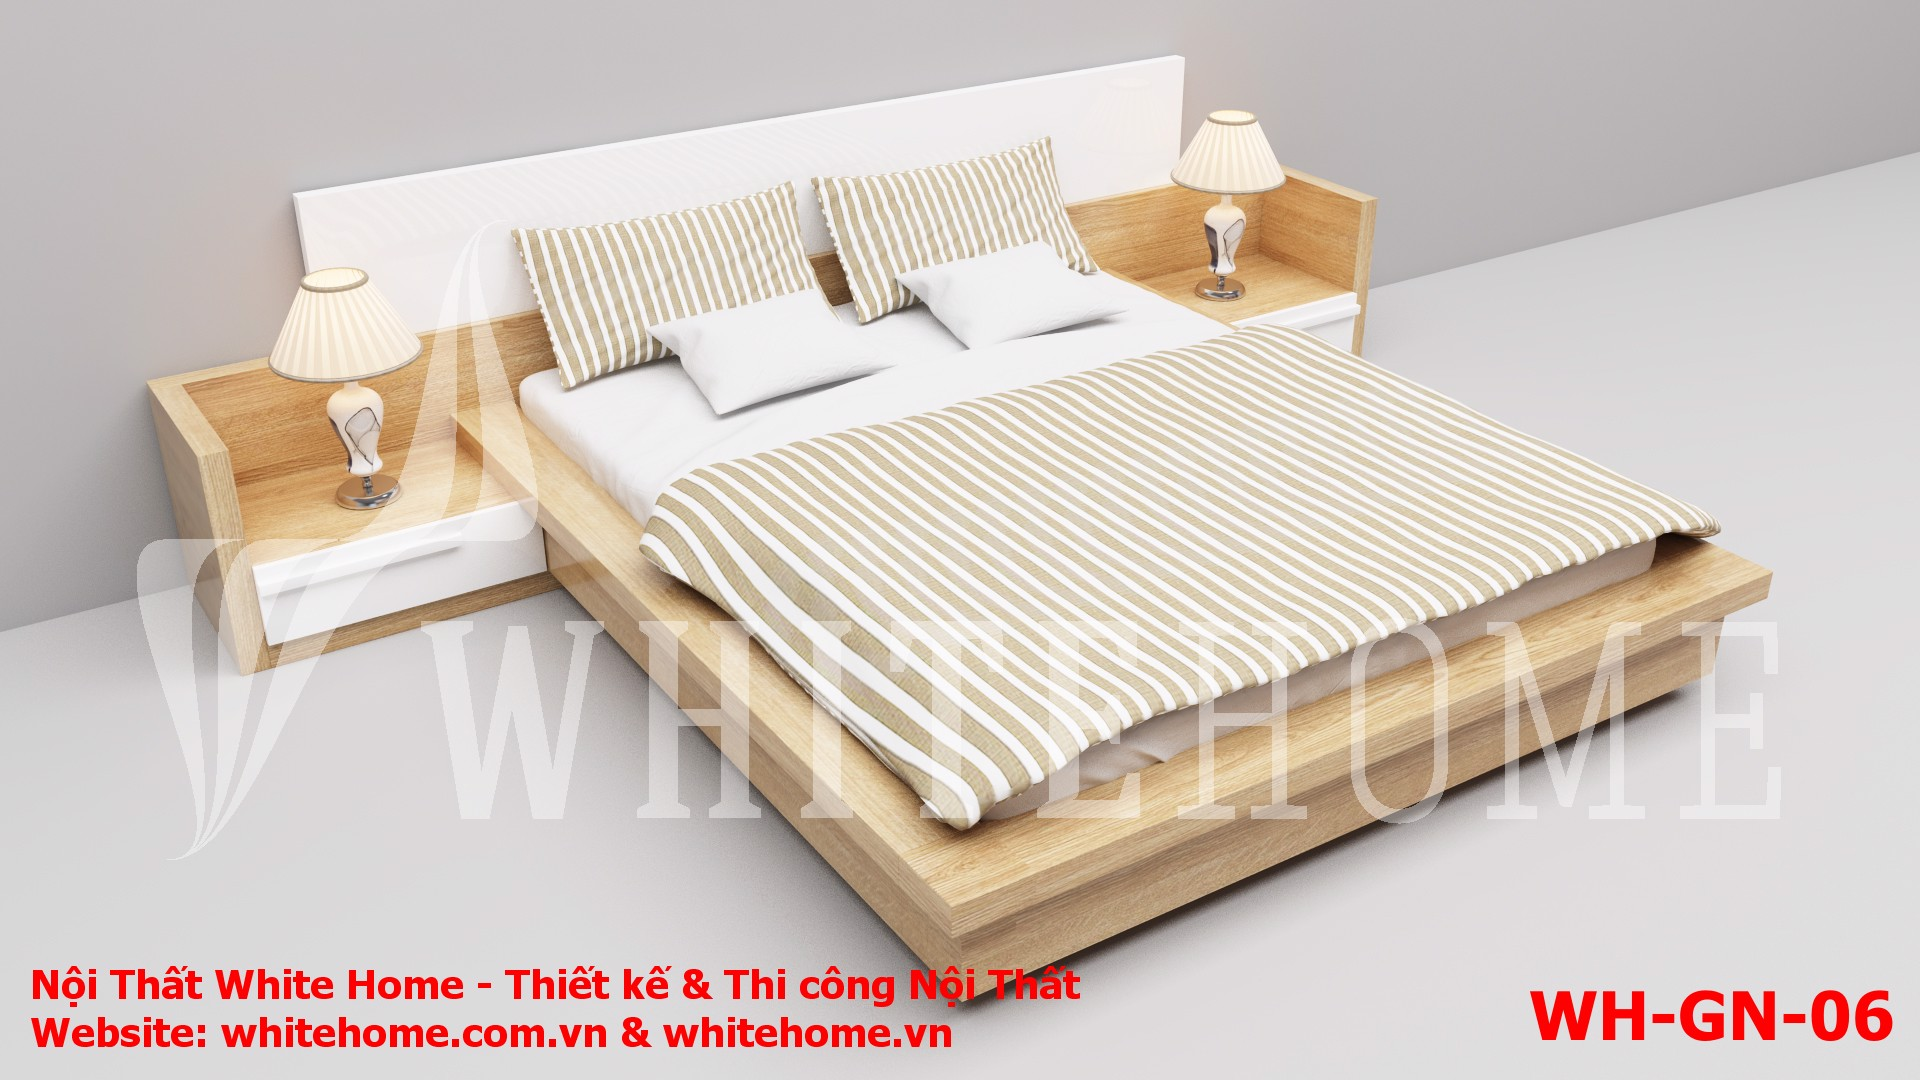 Gường ngủ WH-GN-06 - Nội thất White Home